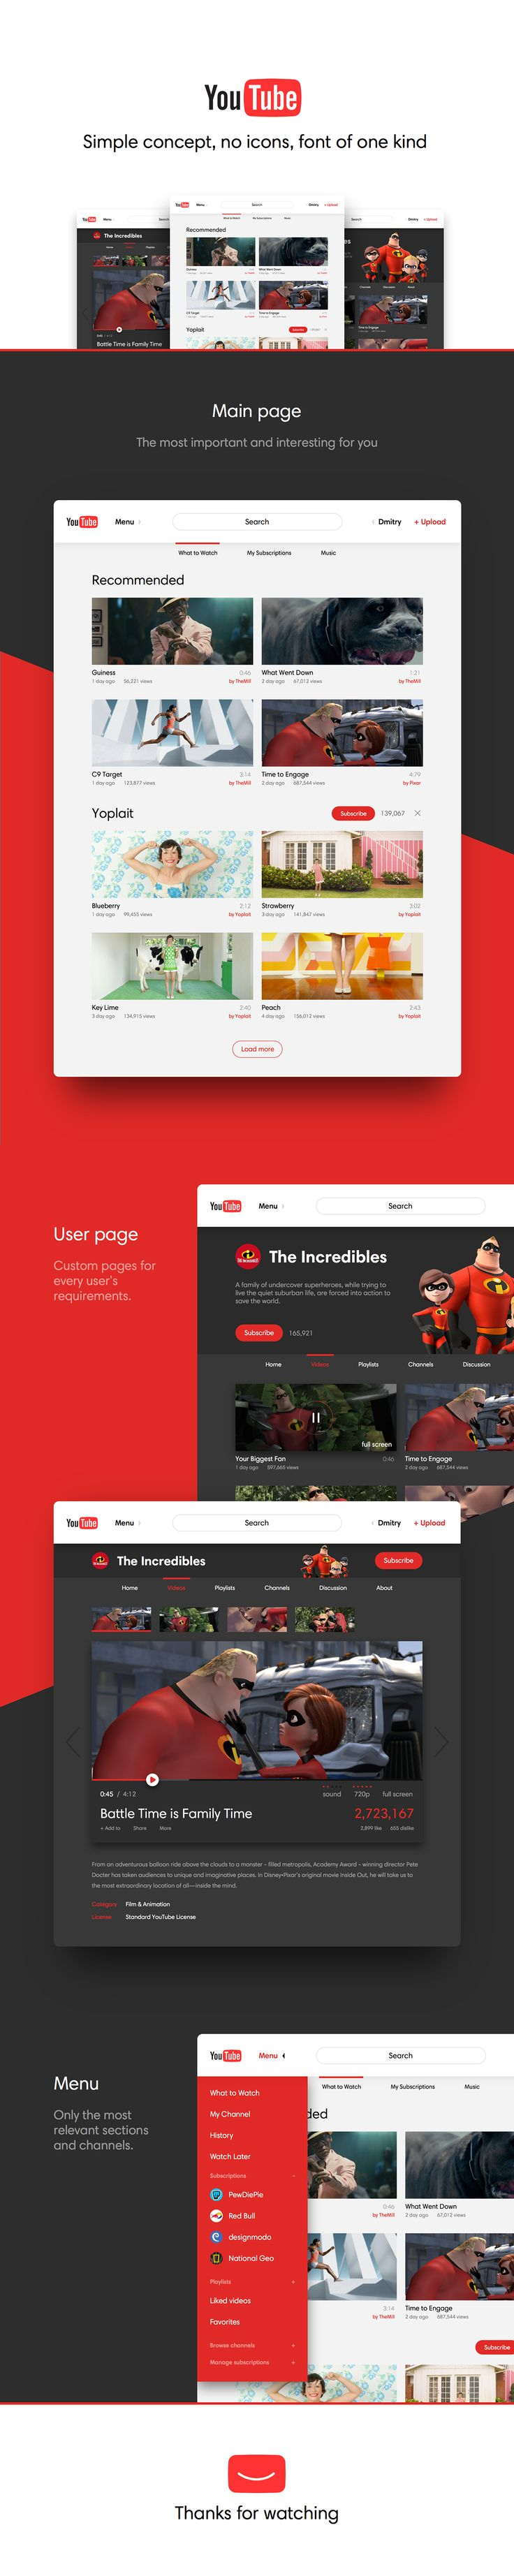 YouTube Simple concept on Web Design Served